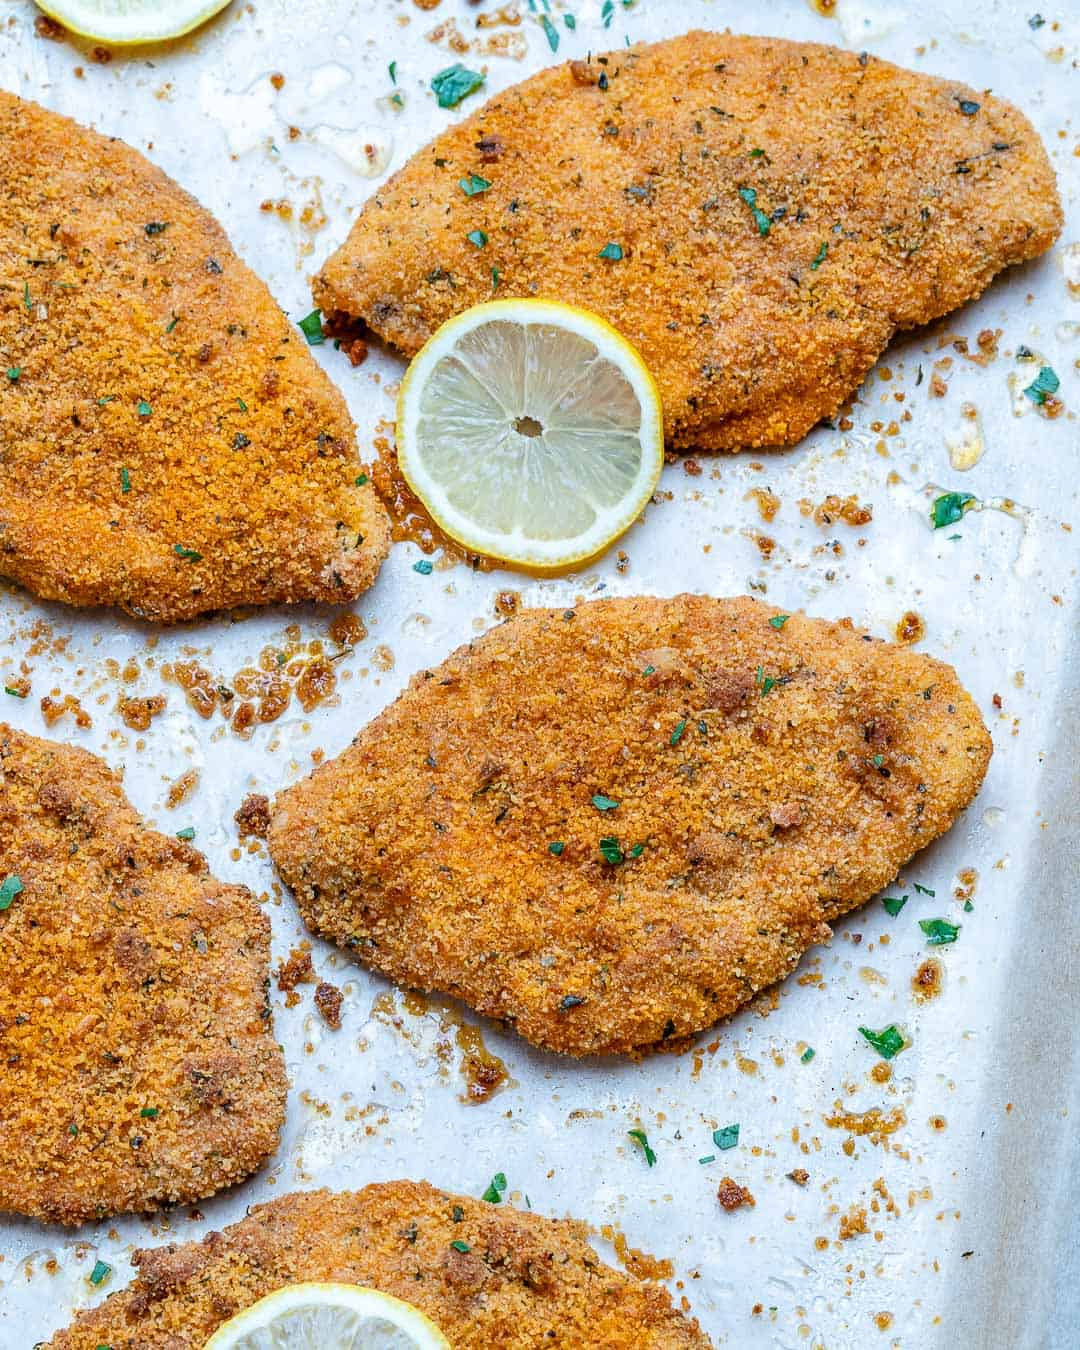 roasted chicken breast cutlets